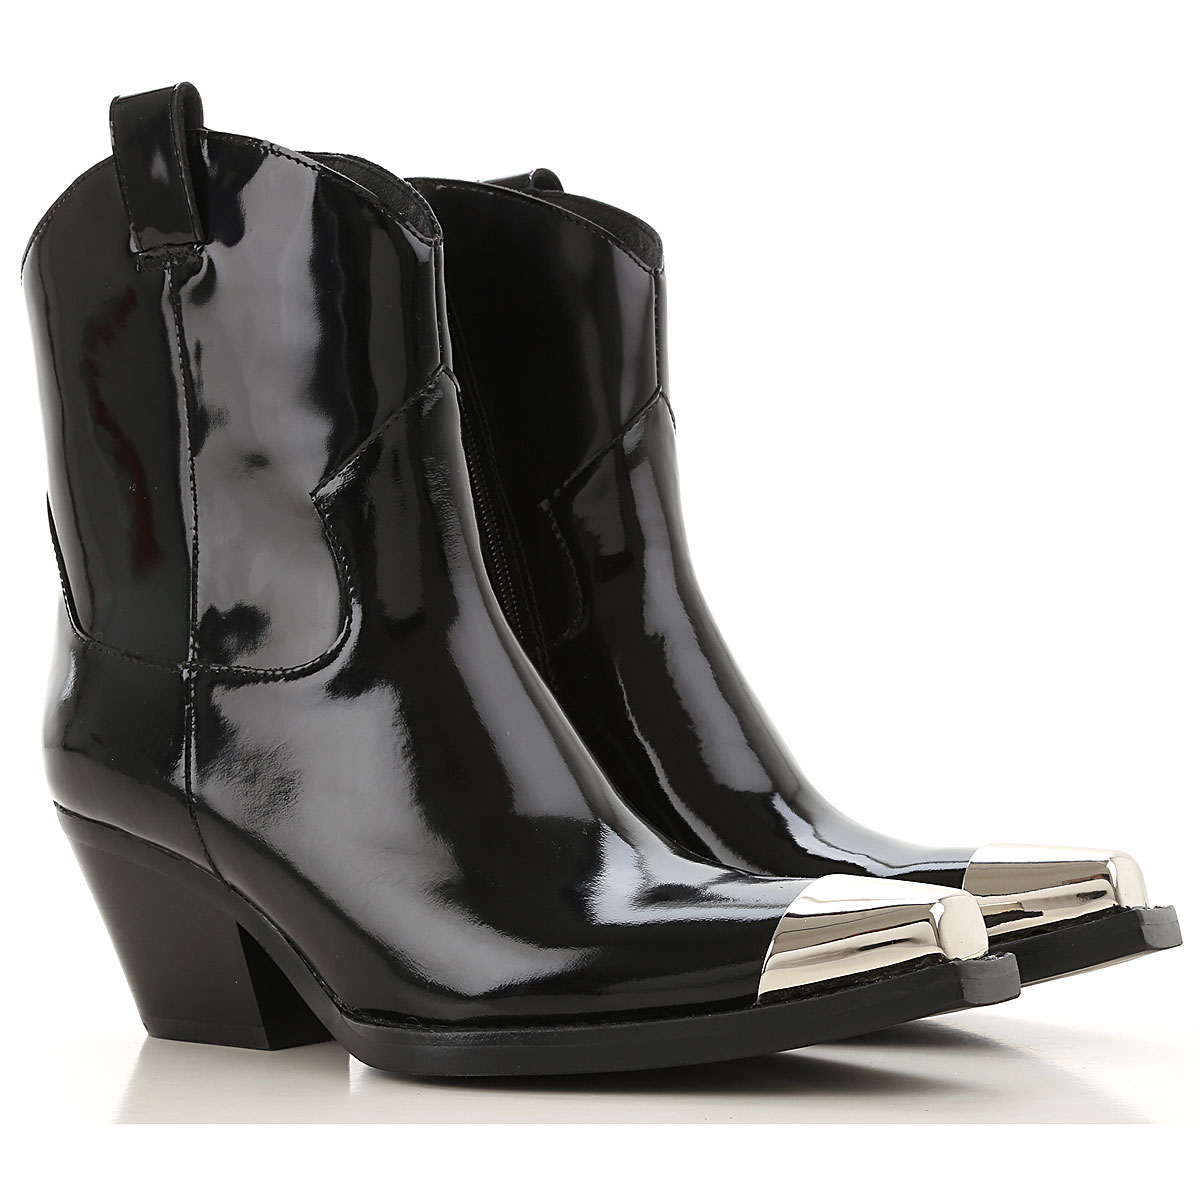 Jeffrey Campbell Boots for Women, Booties, Black, Patent Leather, 2019, 10 6